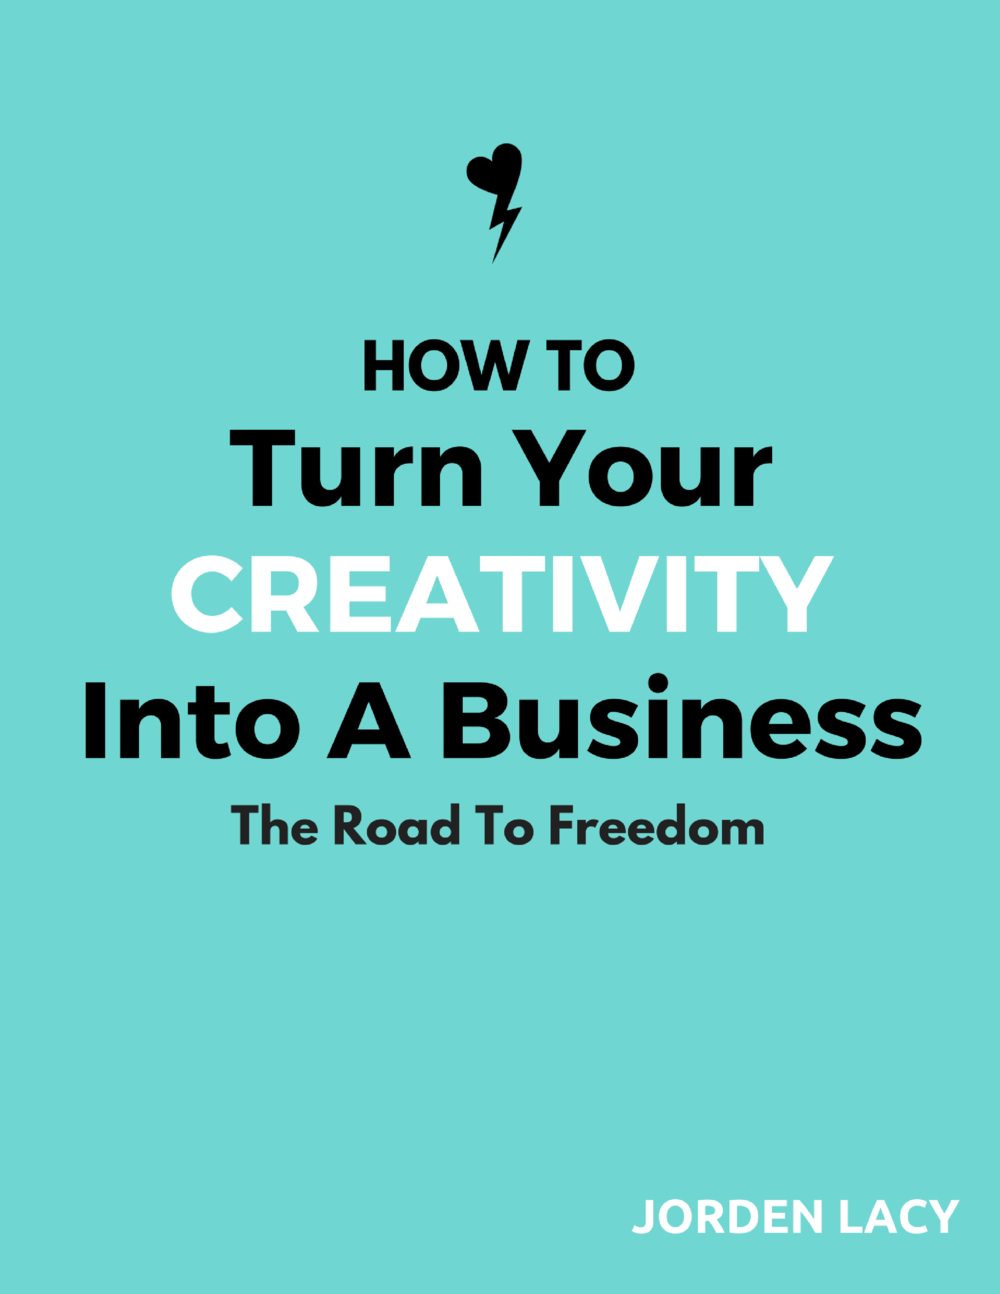 how-to-turn-your-creativity-into-a-business